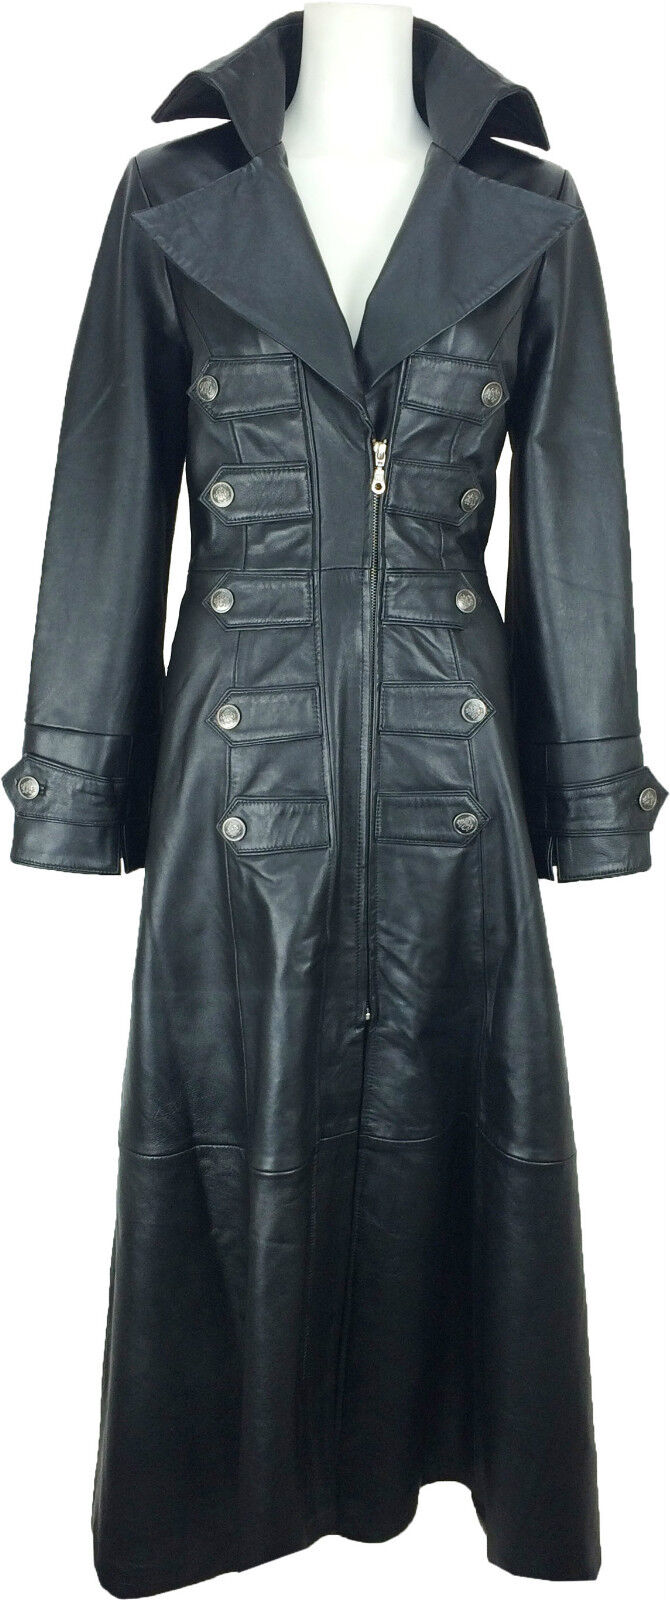 UNICORN damen Full Length Real Leather Trench Coat Gothic Emo Jacket  M5